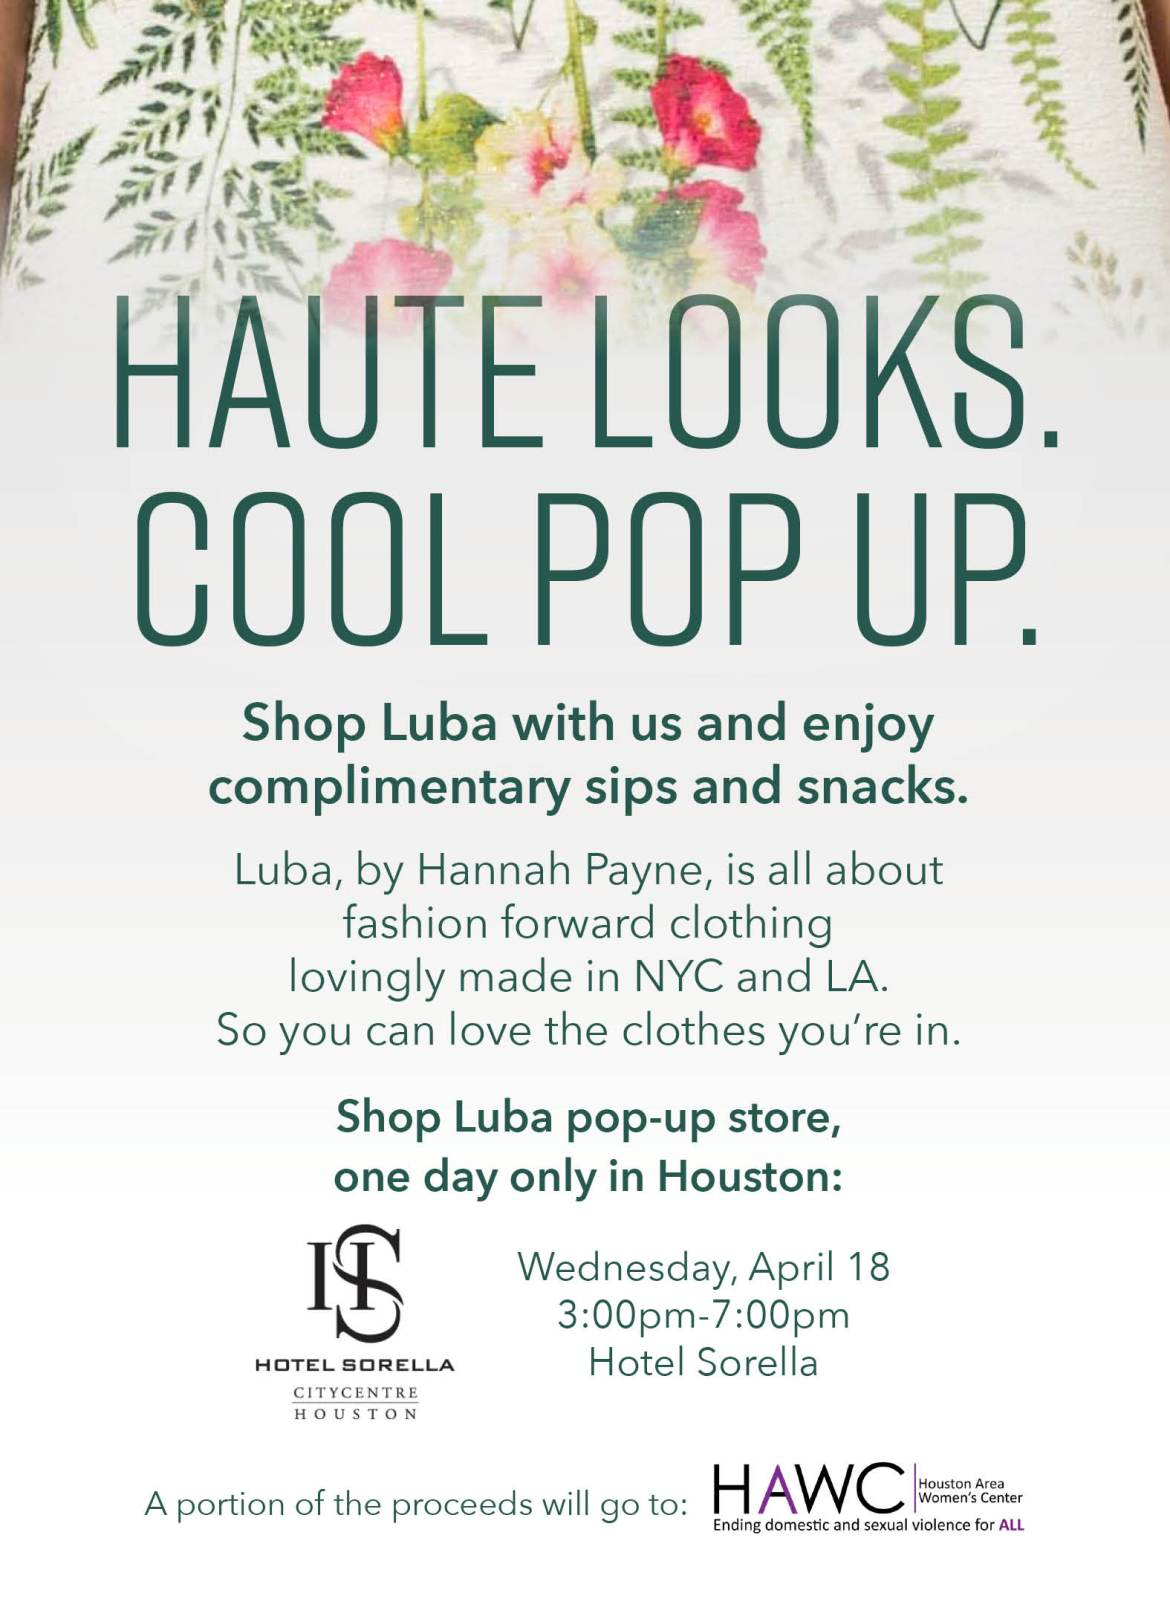 Exciting upcoming shopping event at Hotel Sorella CITYCENTRE on April 18. The immersive pop up experience, highlighting designer Hannah Payne's Luba line